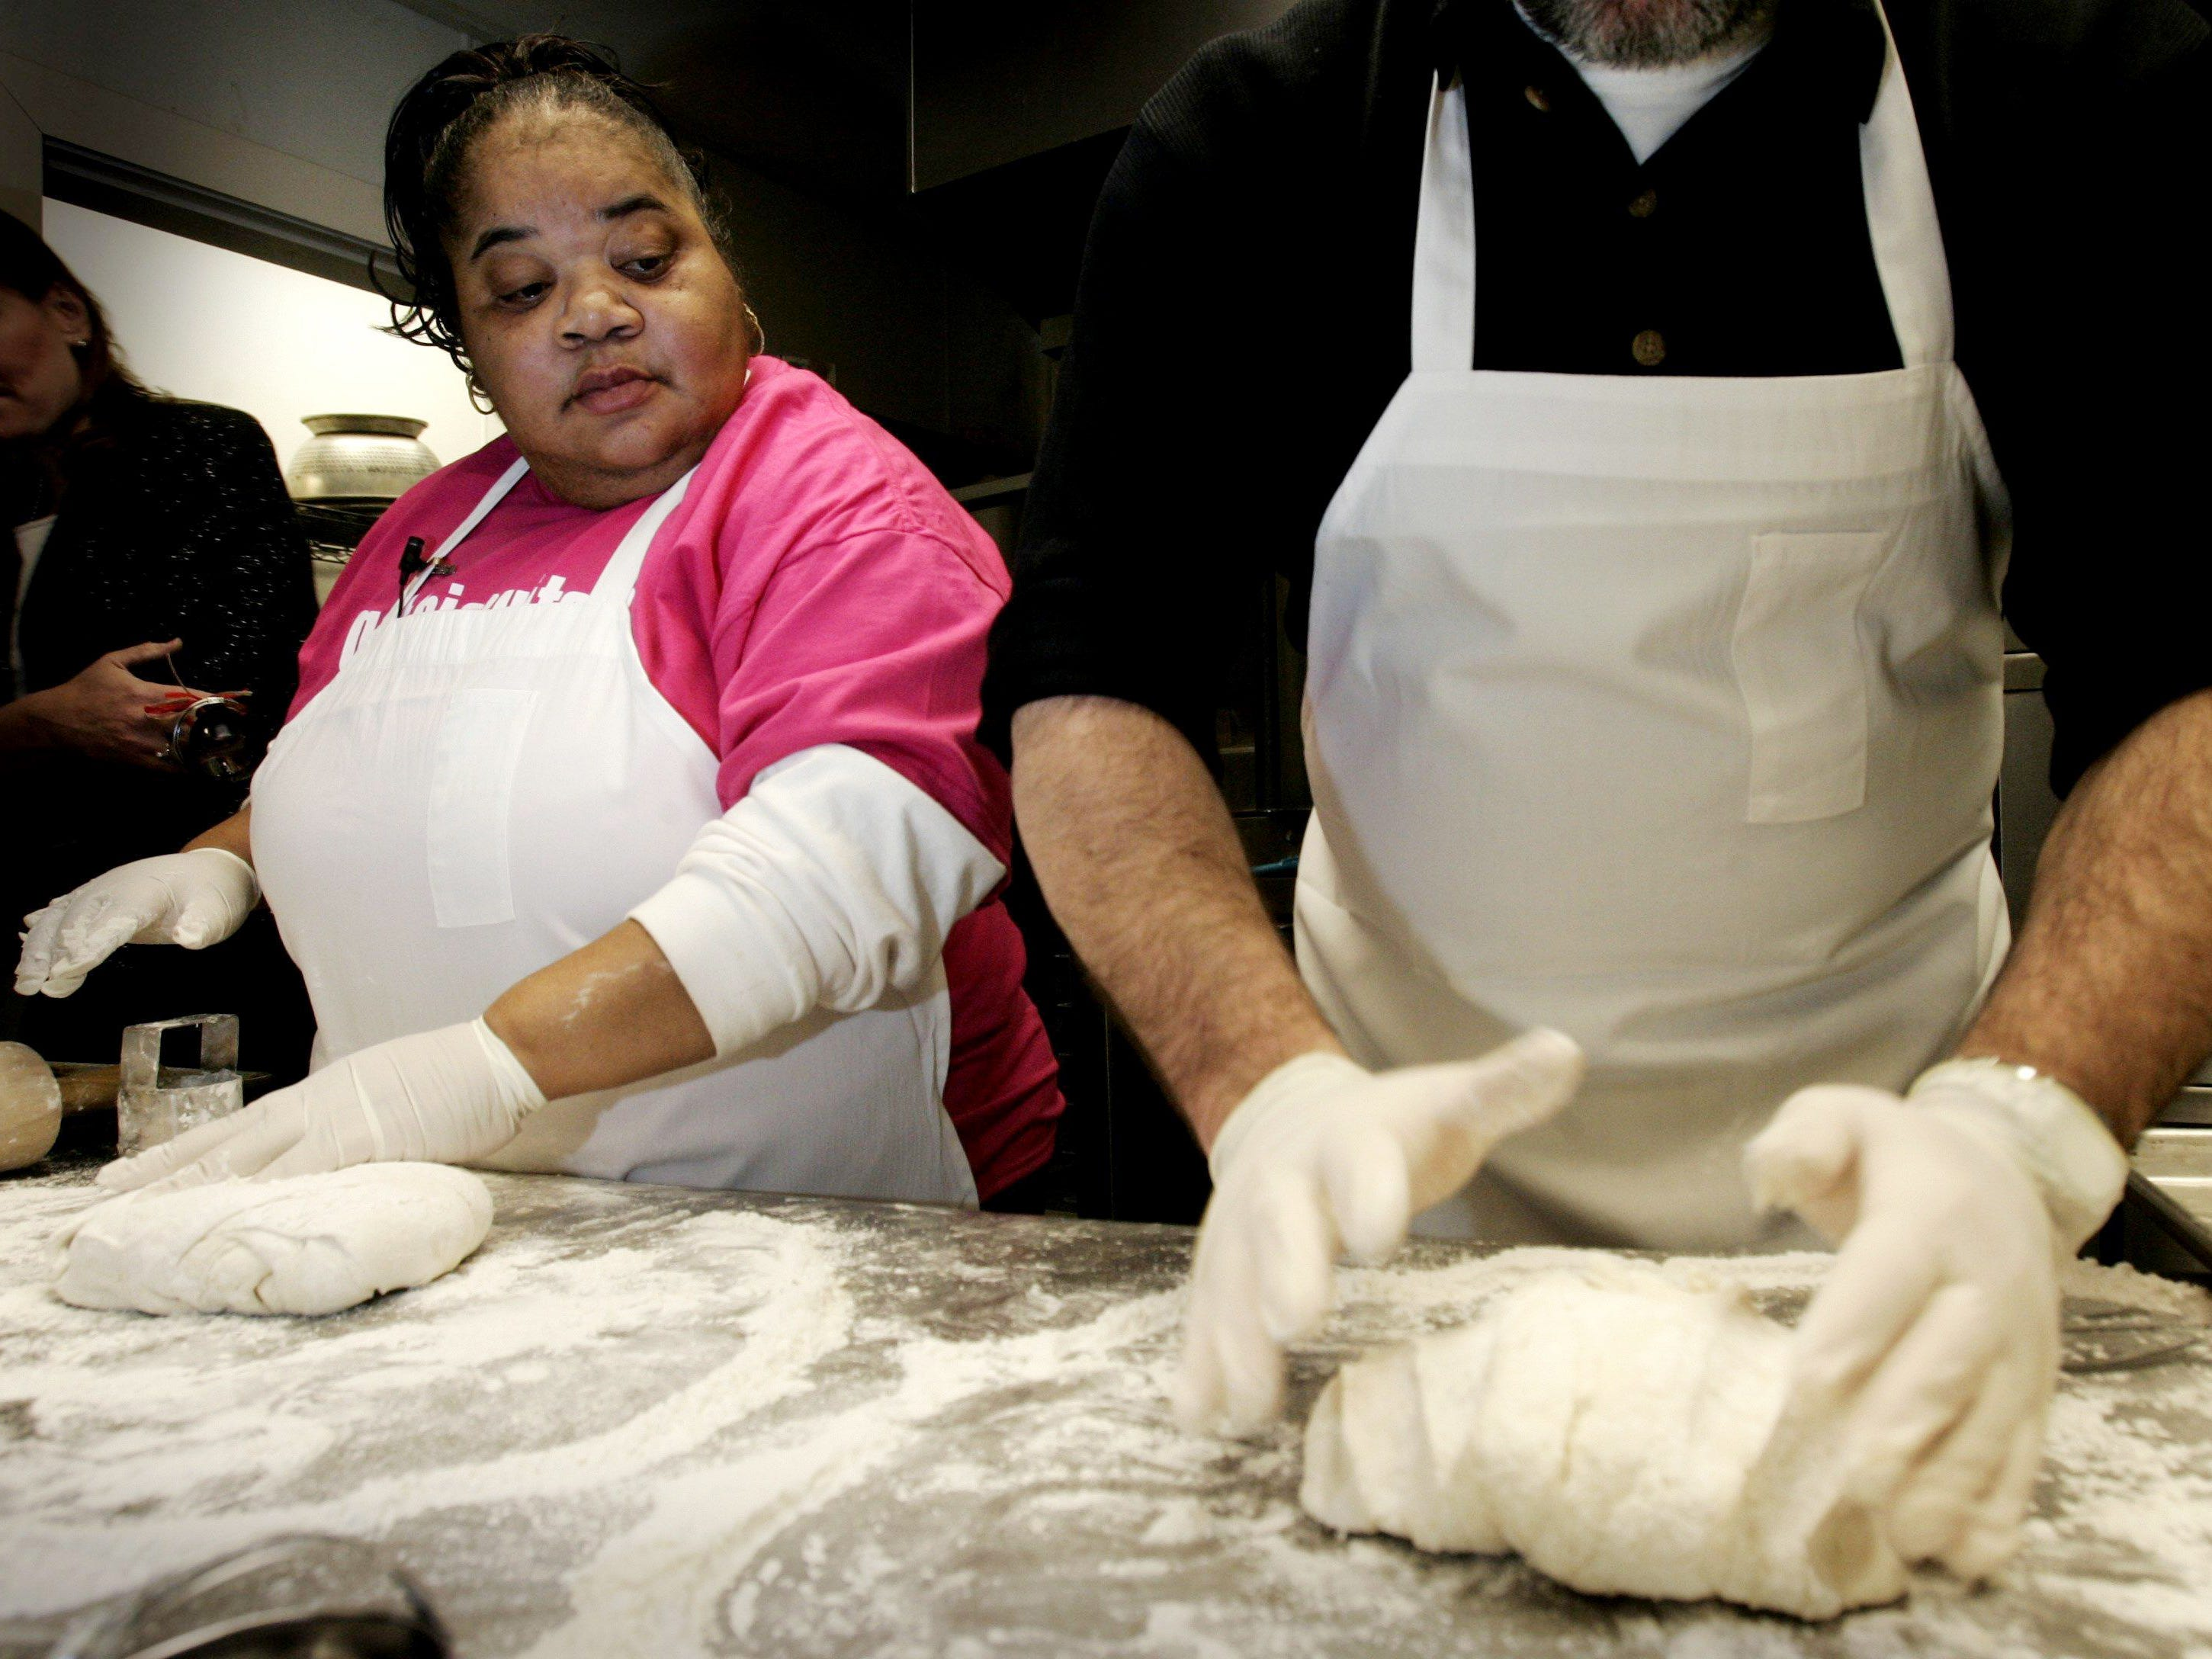 Carol Fay, left, the Biscuit Lady at Loveless Cafe, watches Tennessean reporter Jim Myers make his biscuit dough in the kitchen at Loveless on Jan. 30, 2007. The two had a bake-off for the best biscuits.